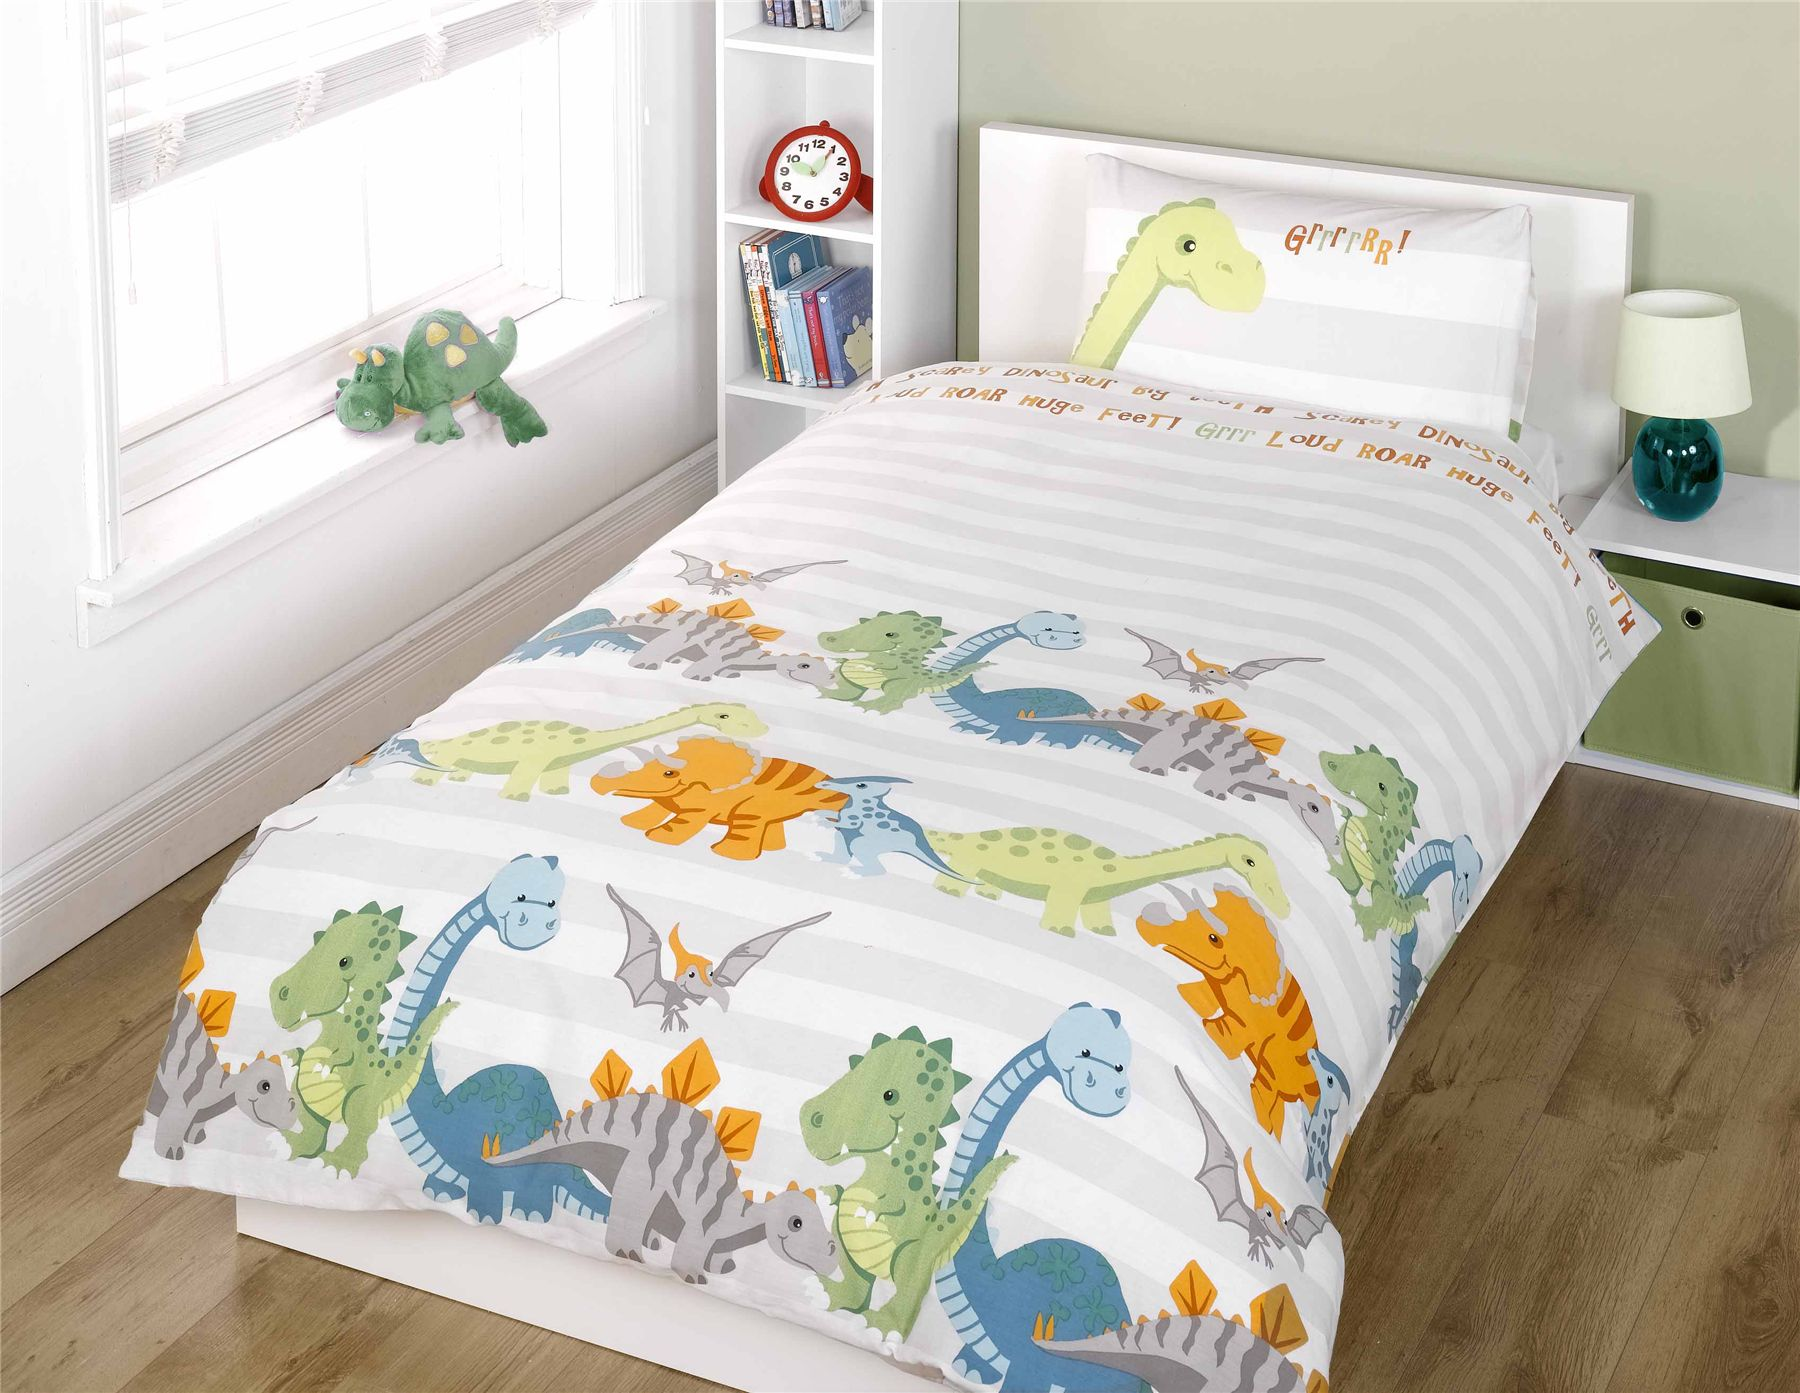 Kids' duvet sets are an excellent bedding choice for your child's room. Vivid colors and adorable designs add visual appeal and create a playful, whimsical atmosphere. The duvet covers in these sets offer practical benefits: they protect duvet inserts from wear and tear and they are easier to wash than traditional comforters.